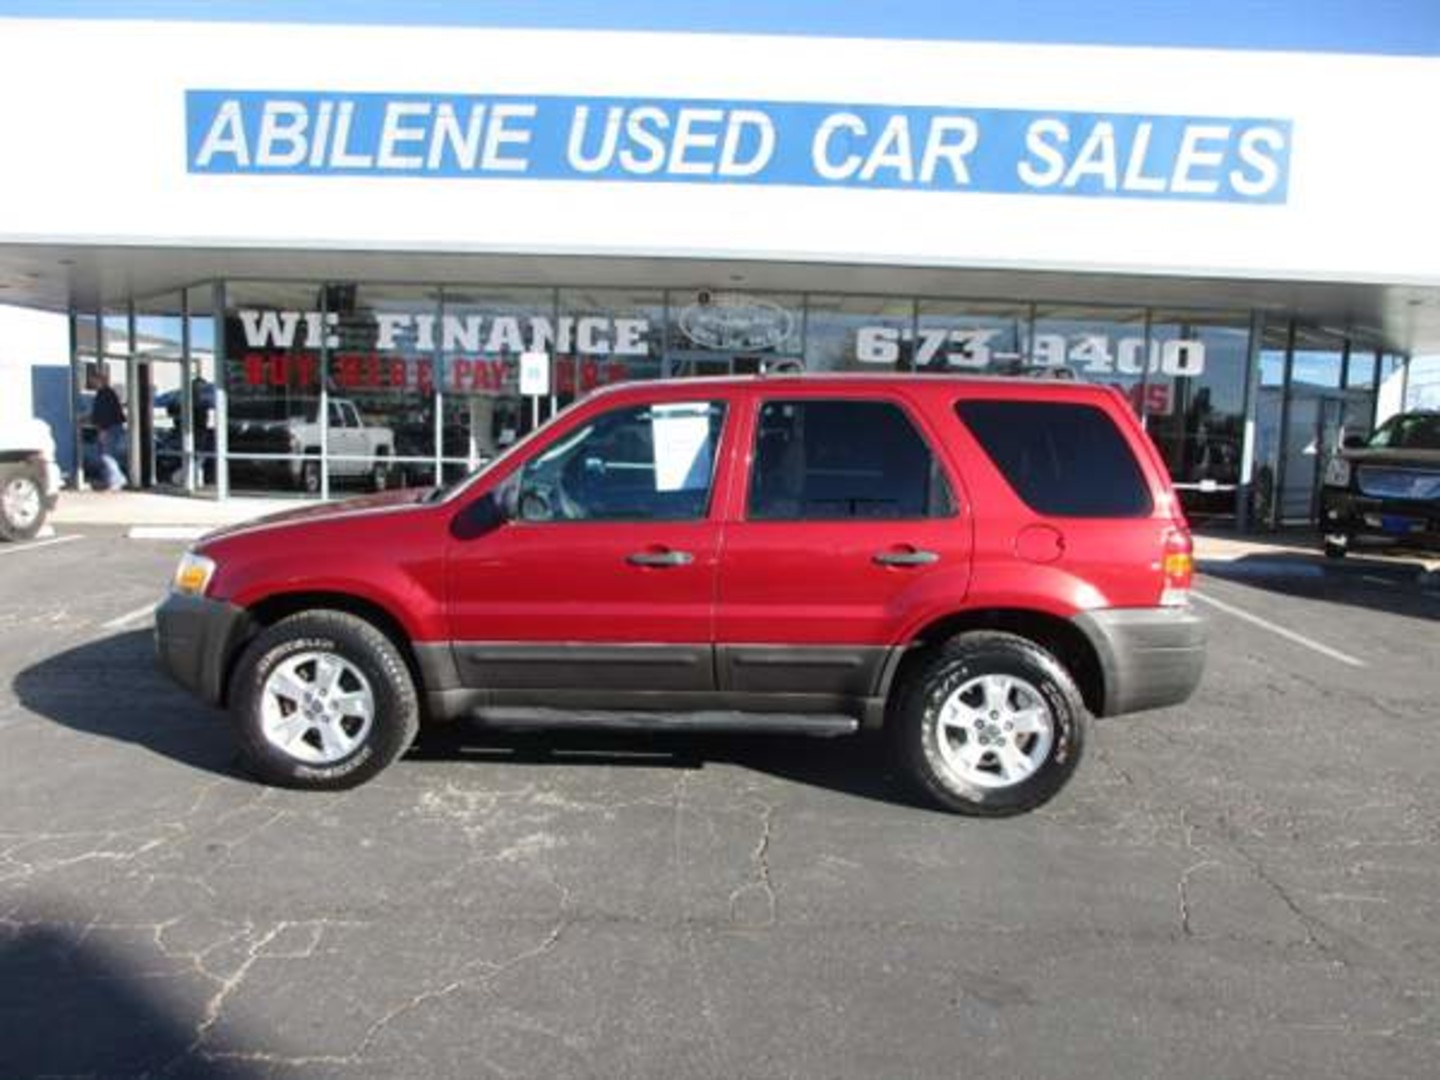 2007 ford escape xlt sport abilene tx abilene used car sales. Black Bedroom Furniture Sets. Home Design Ideas